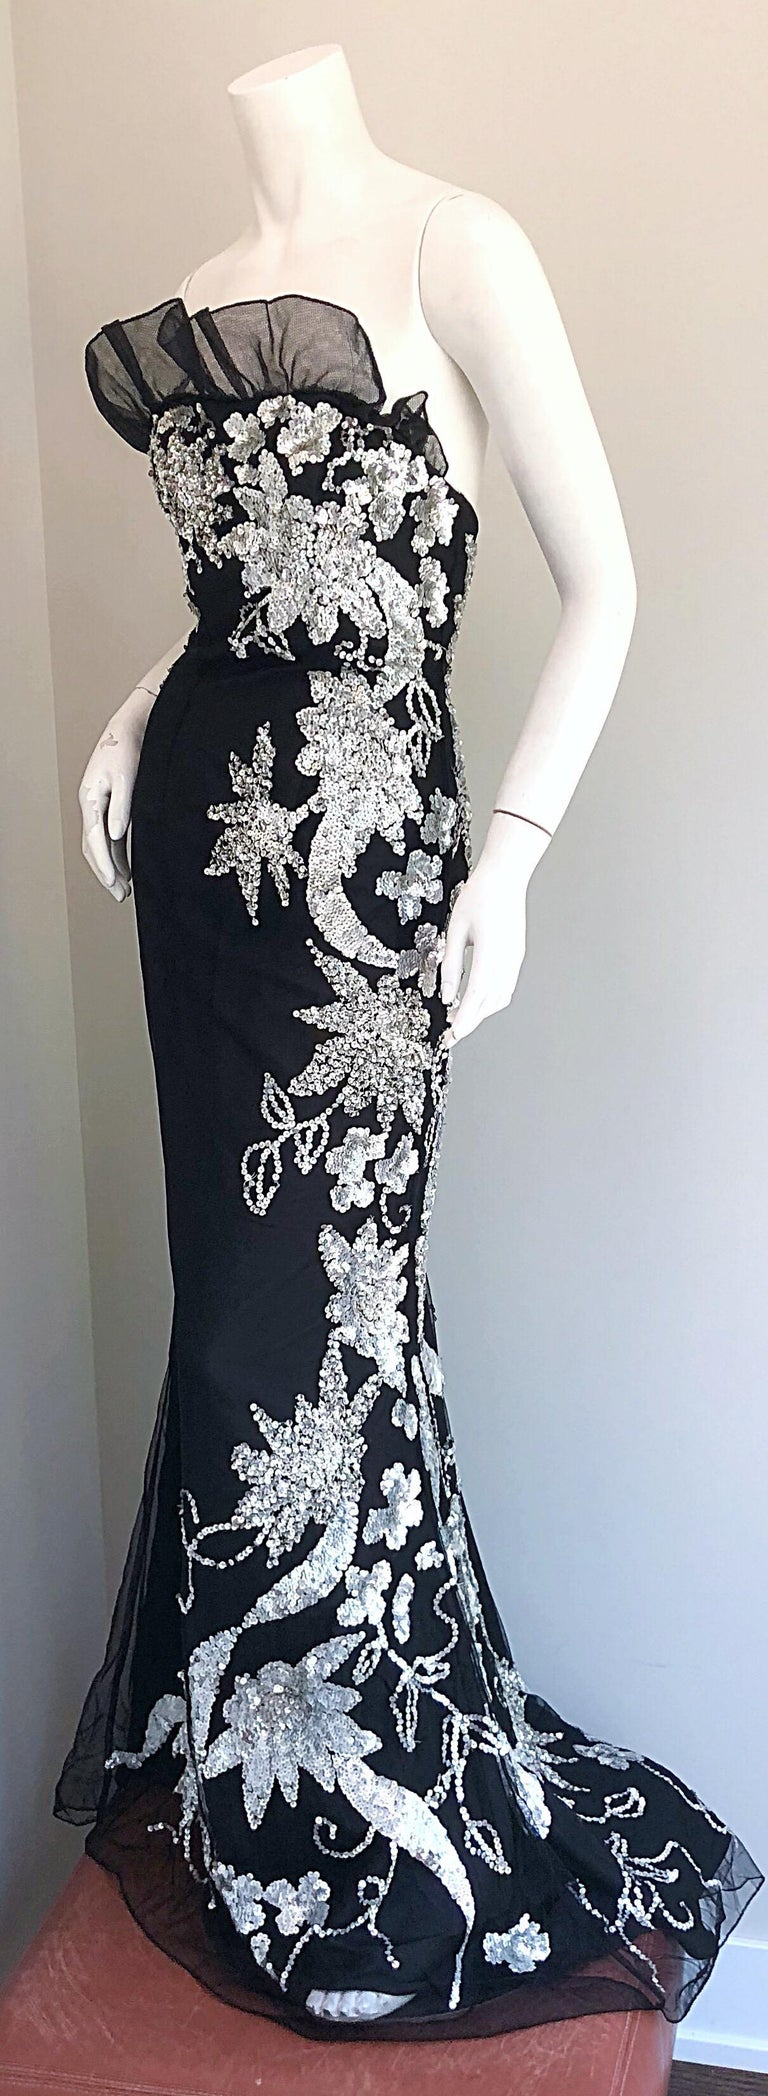 Gorgeous 1990s Black and Silver Sequined Dramatic Strapless Vintage 90s Gown  5